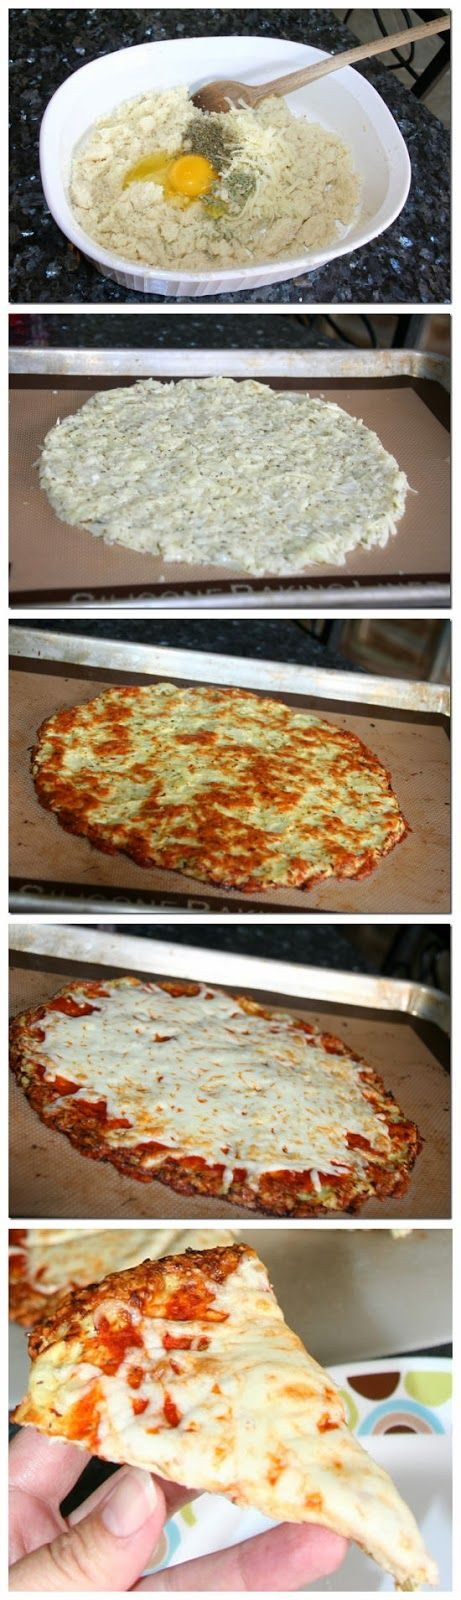 Cauliflower Crust Pizza!